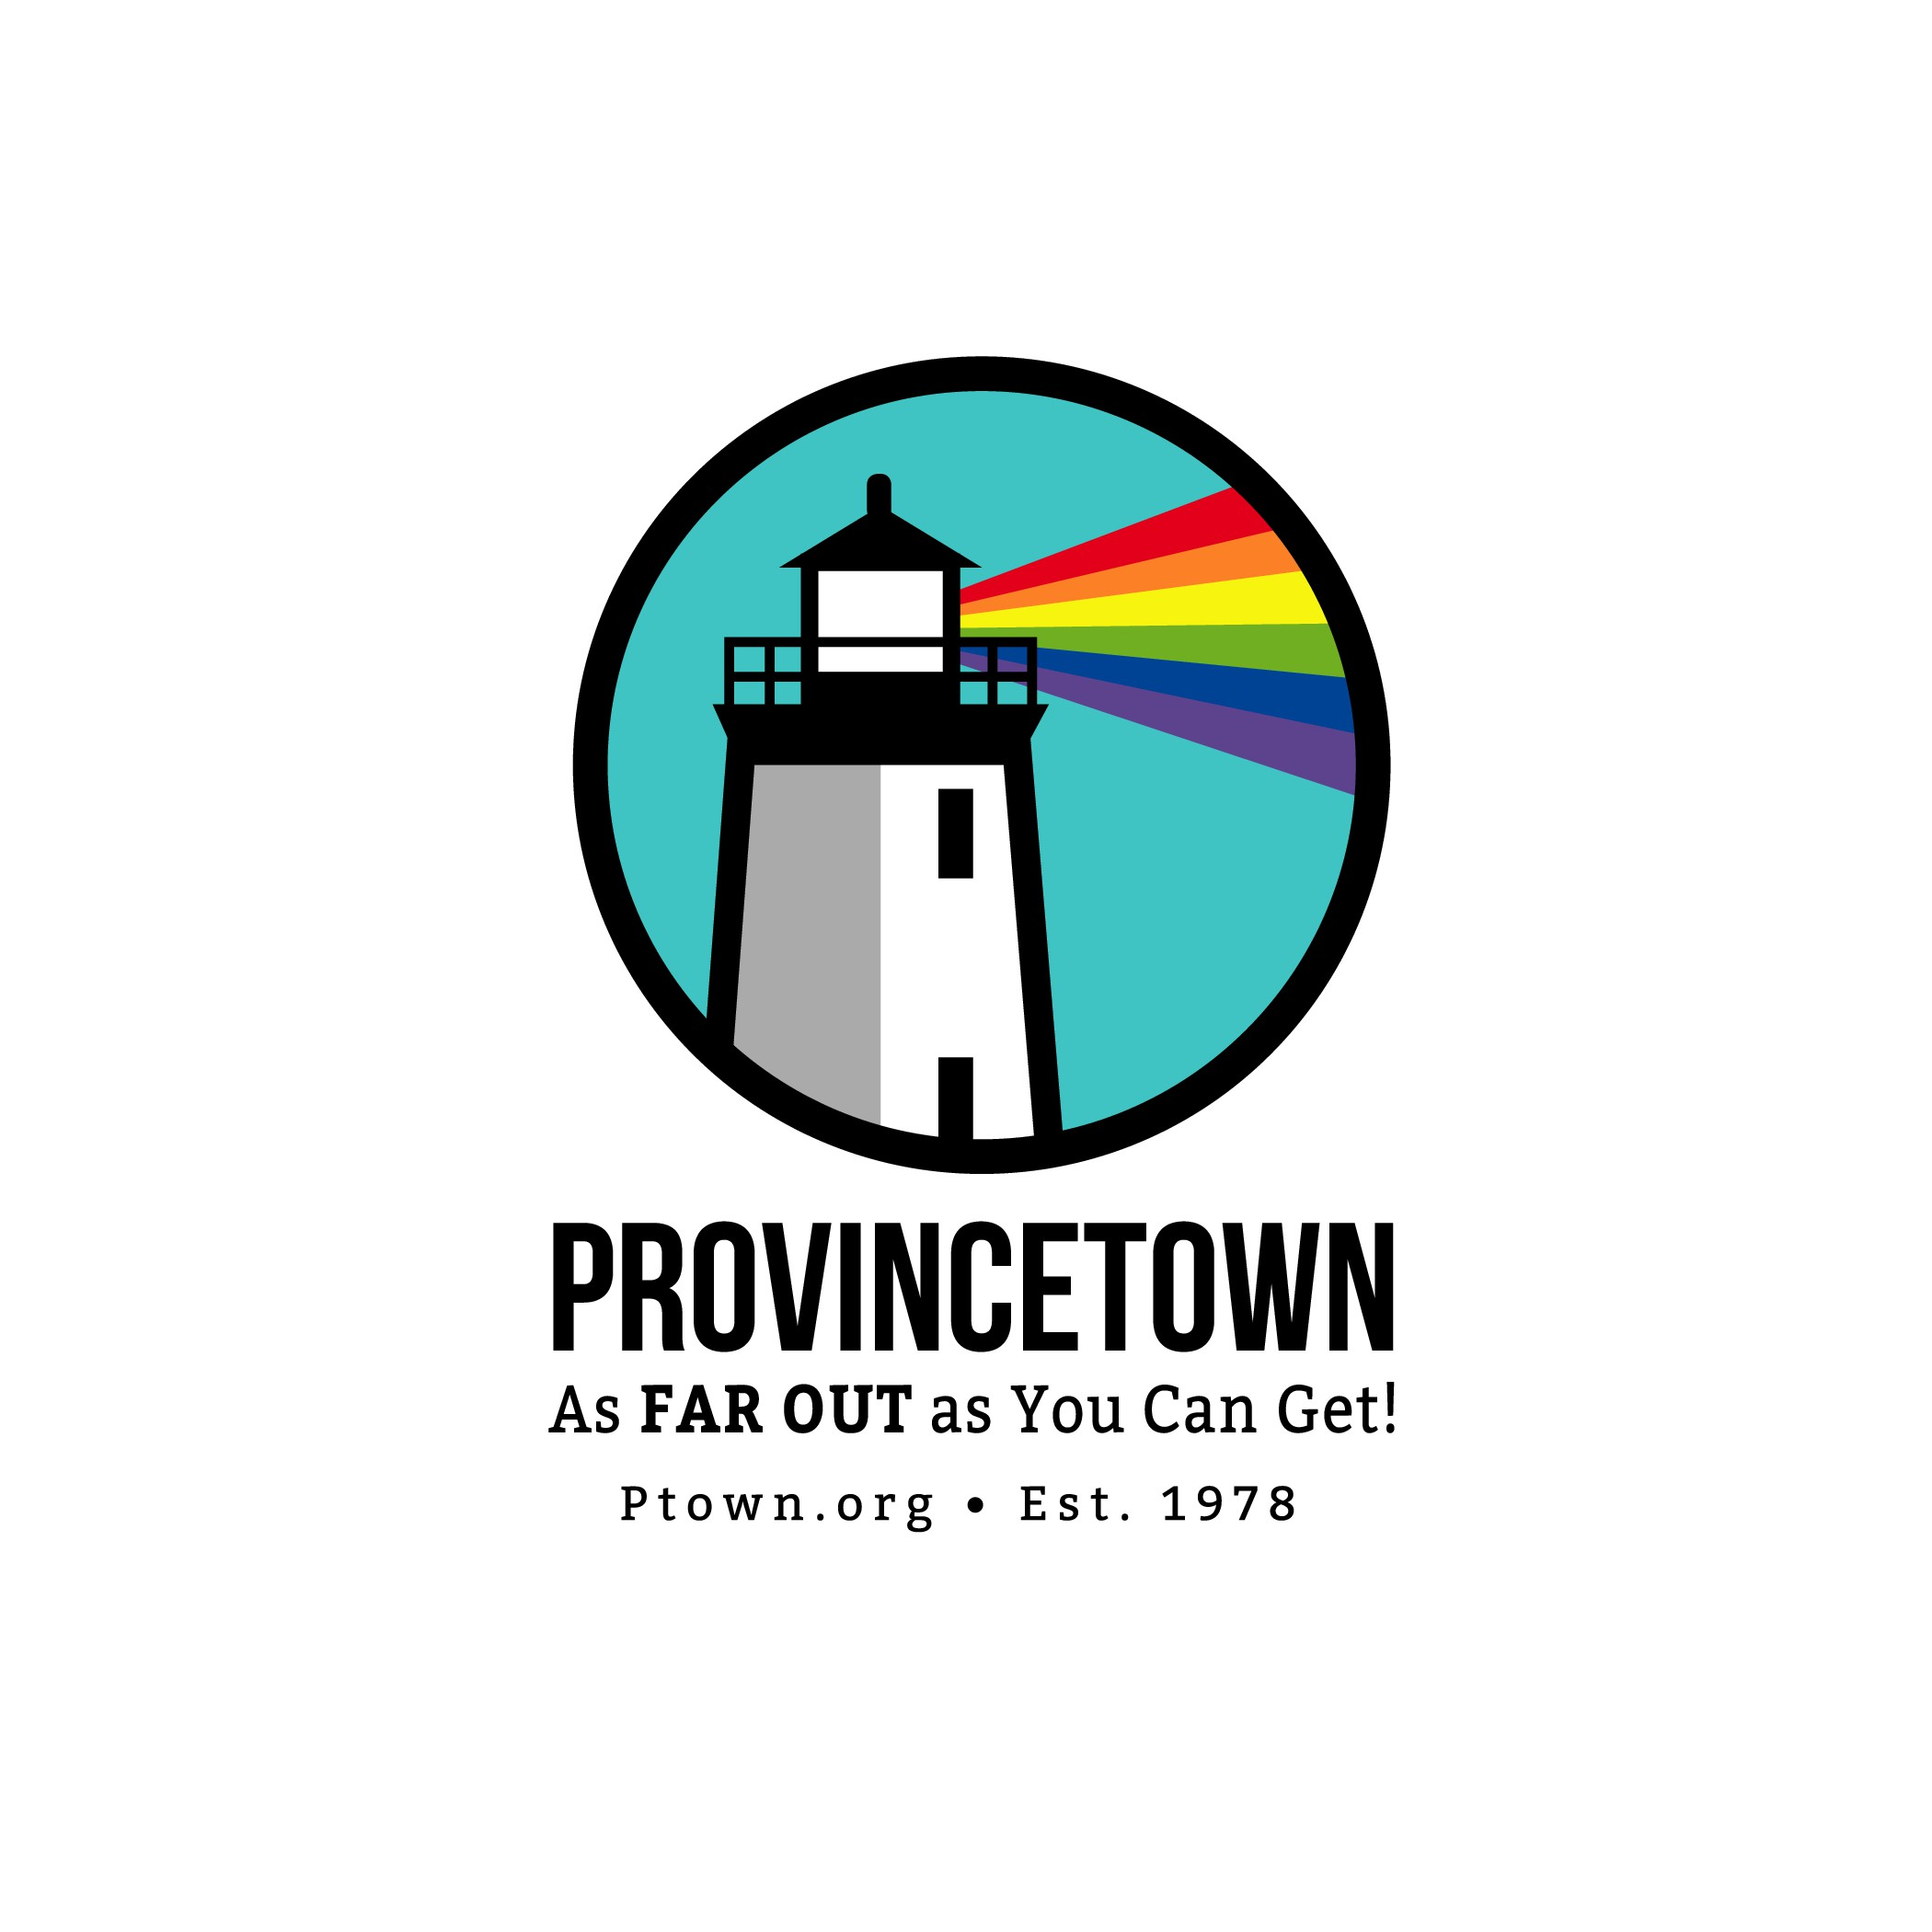 Help the Provincetown Business Guild find their Rainbow Beam!